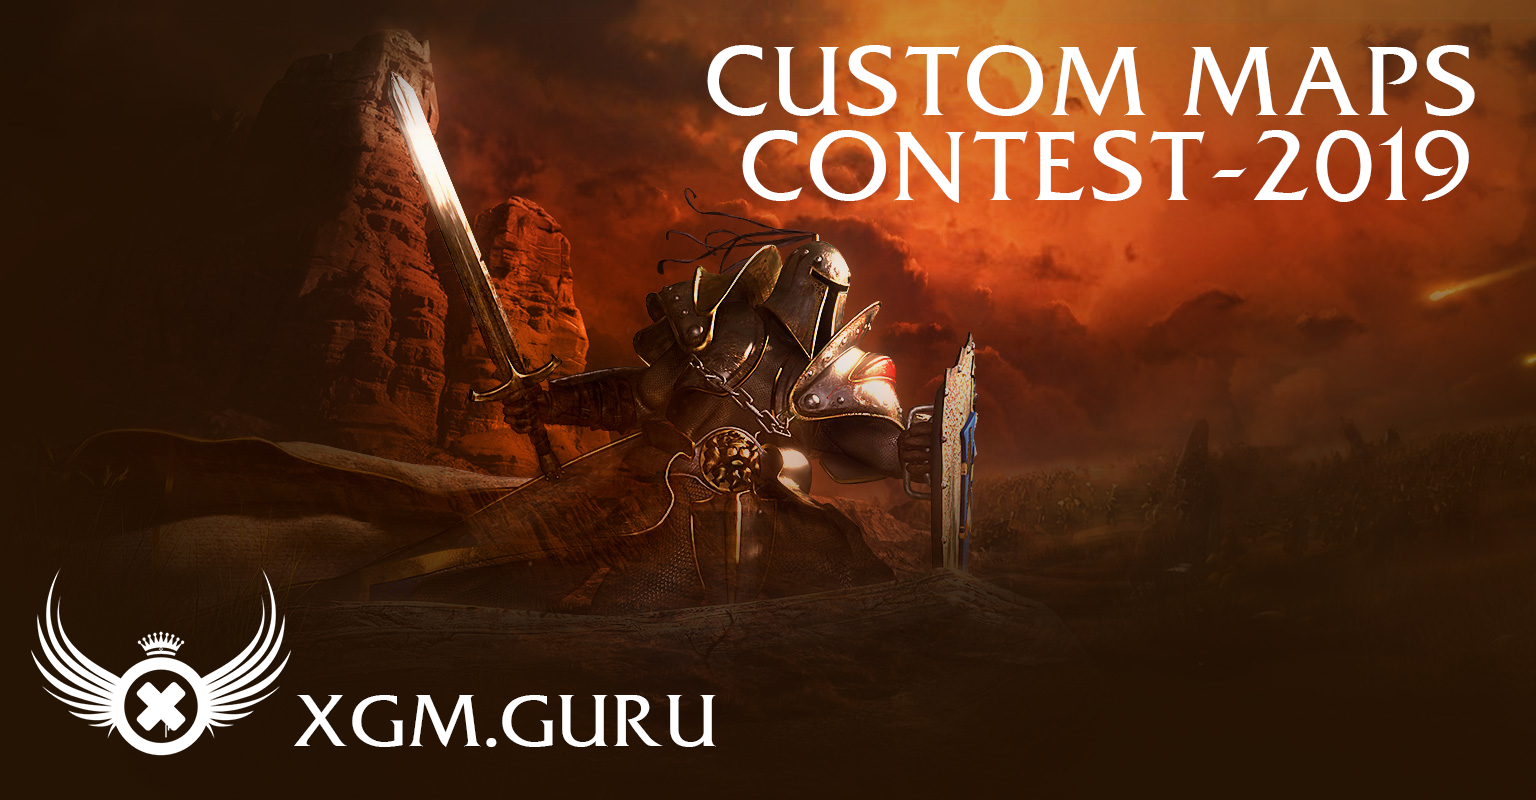 https://xgm.guru/p/contest/war3-cmc-2019